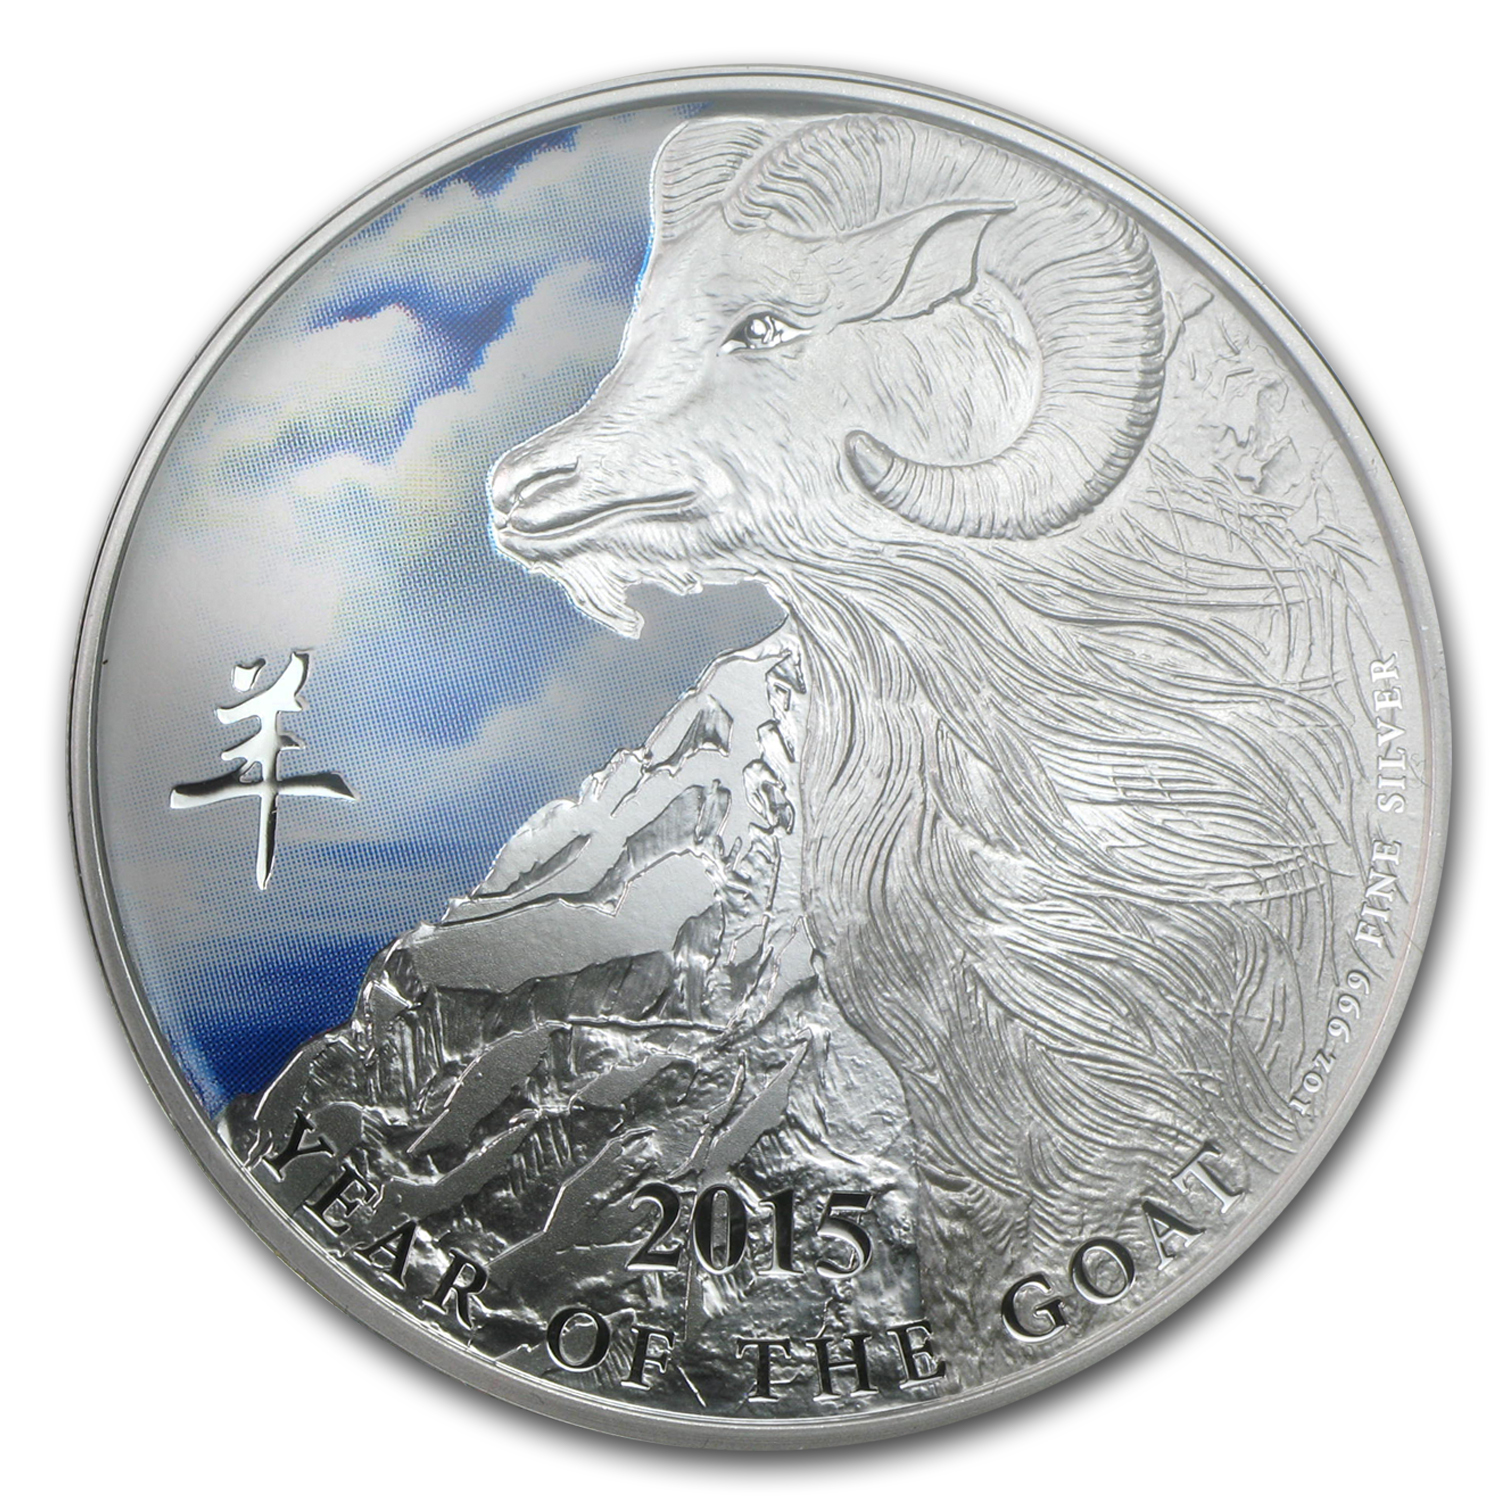 2015 1 oz Silver Niue $2 Lunar Goat (Colorized)